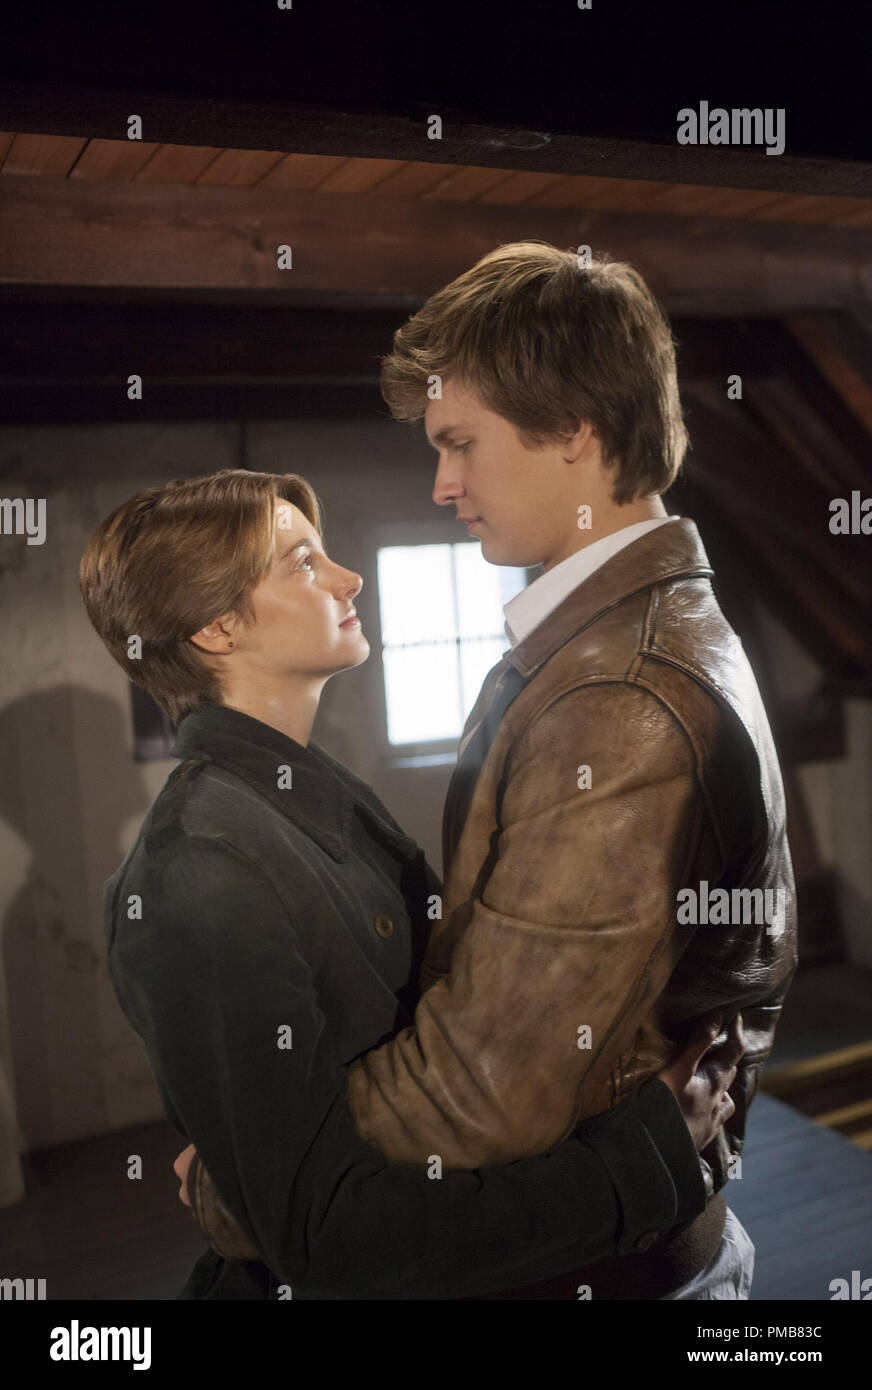 """Hazel (Shailene Woodley) and Gus (Ansel Elgort) share a tender moment during a memorable trip abroad in """"The Fault in Our Stars"""" (2014) Stock Photo"""